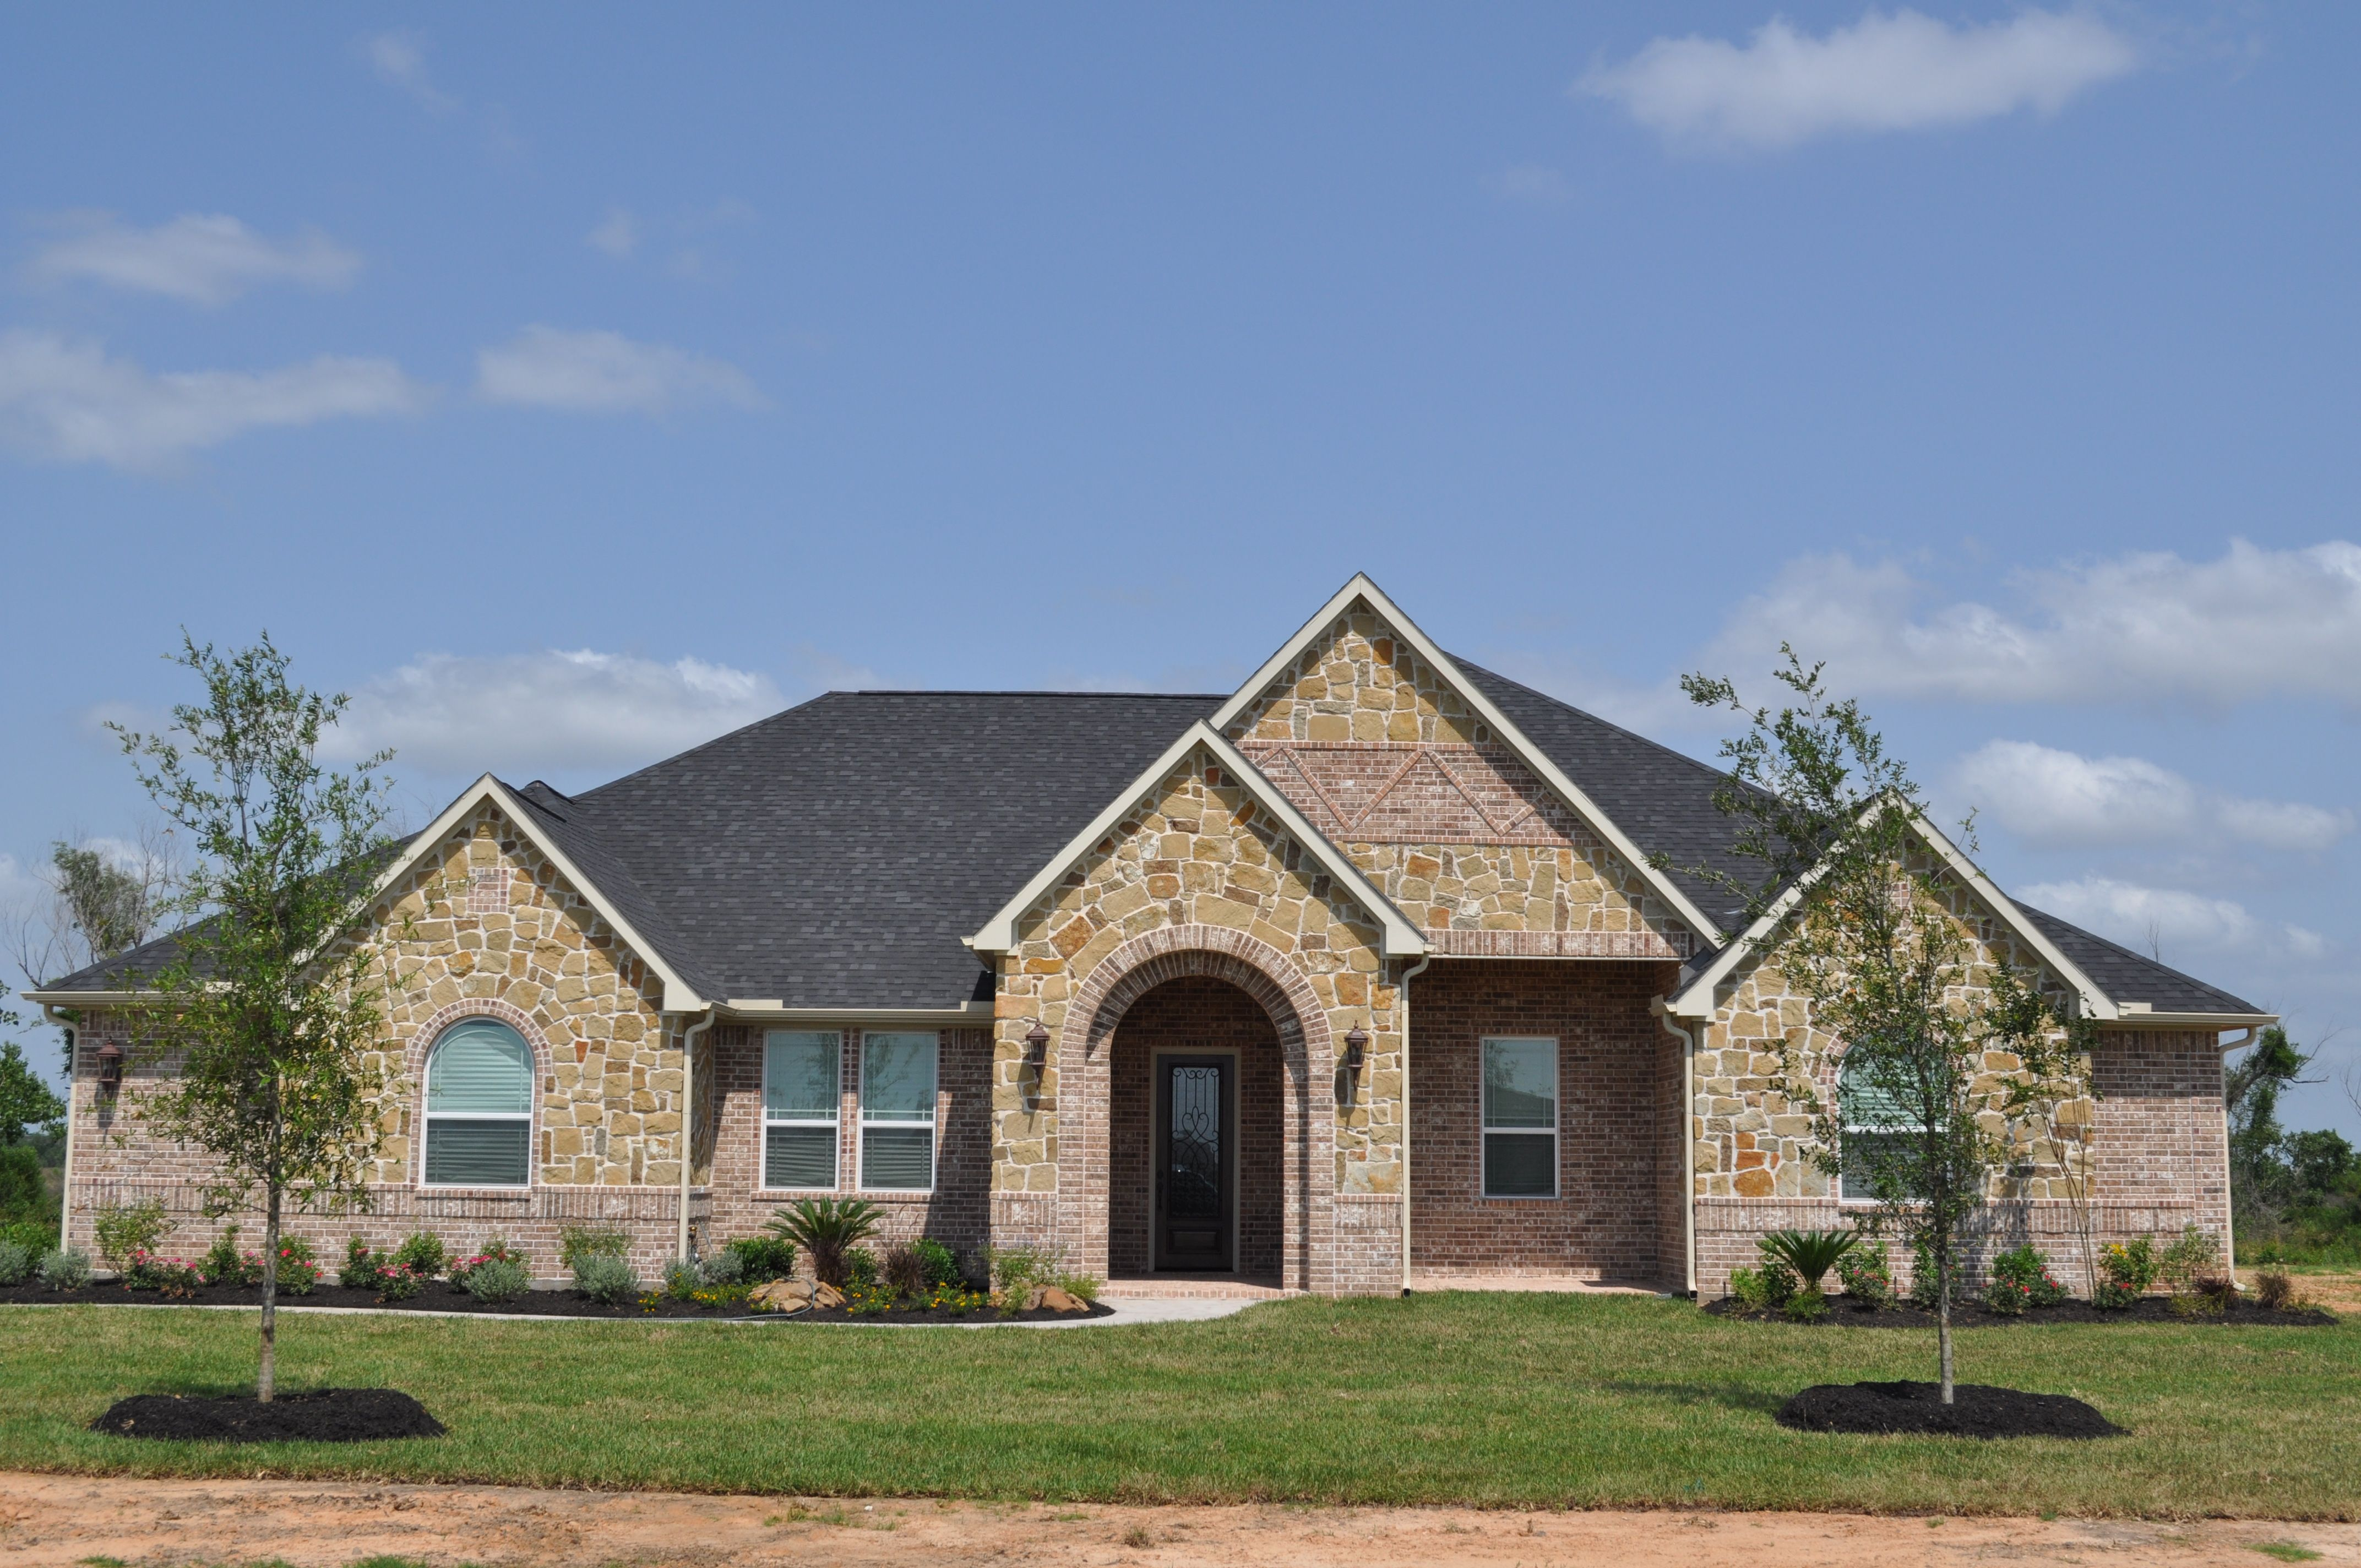 Single Story Home In Katy Built In 2012 By New Tradition Builders